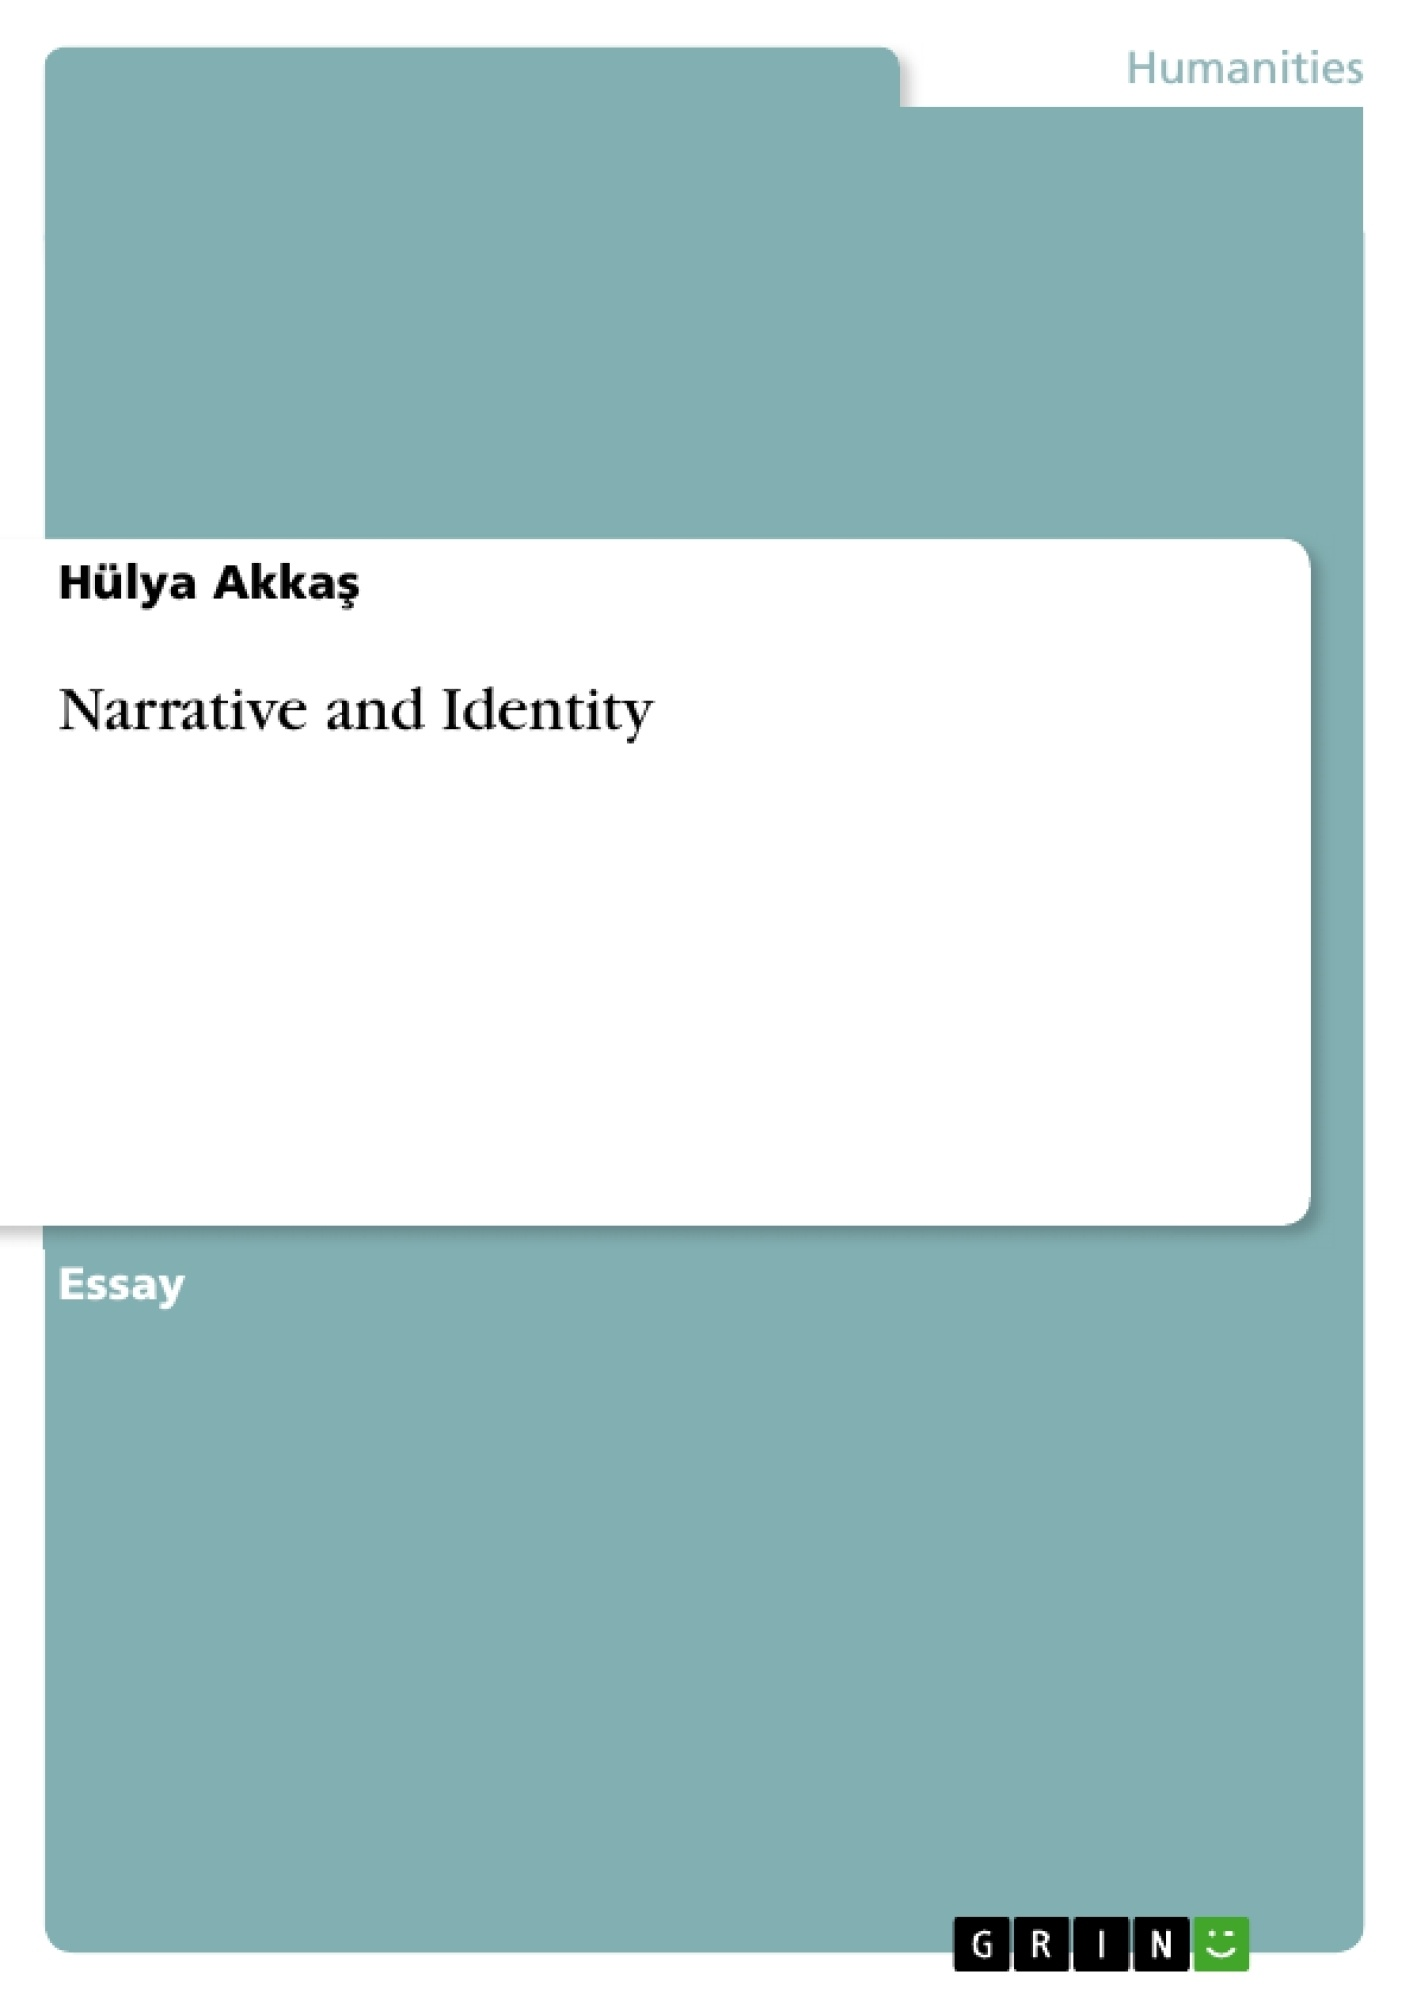 Title: Narrative and Identity